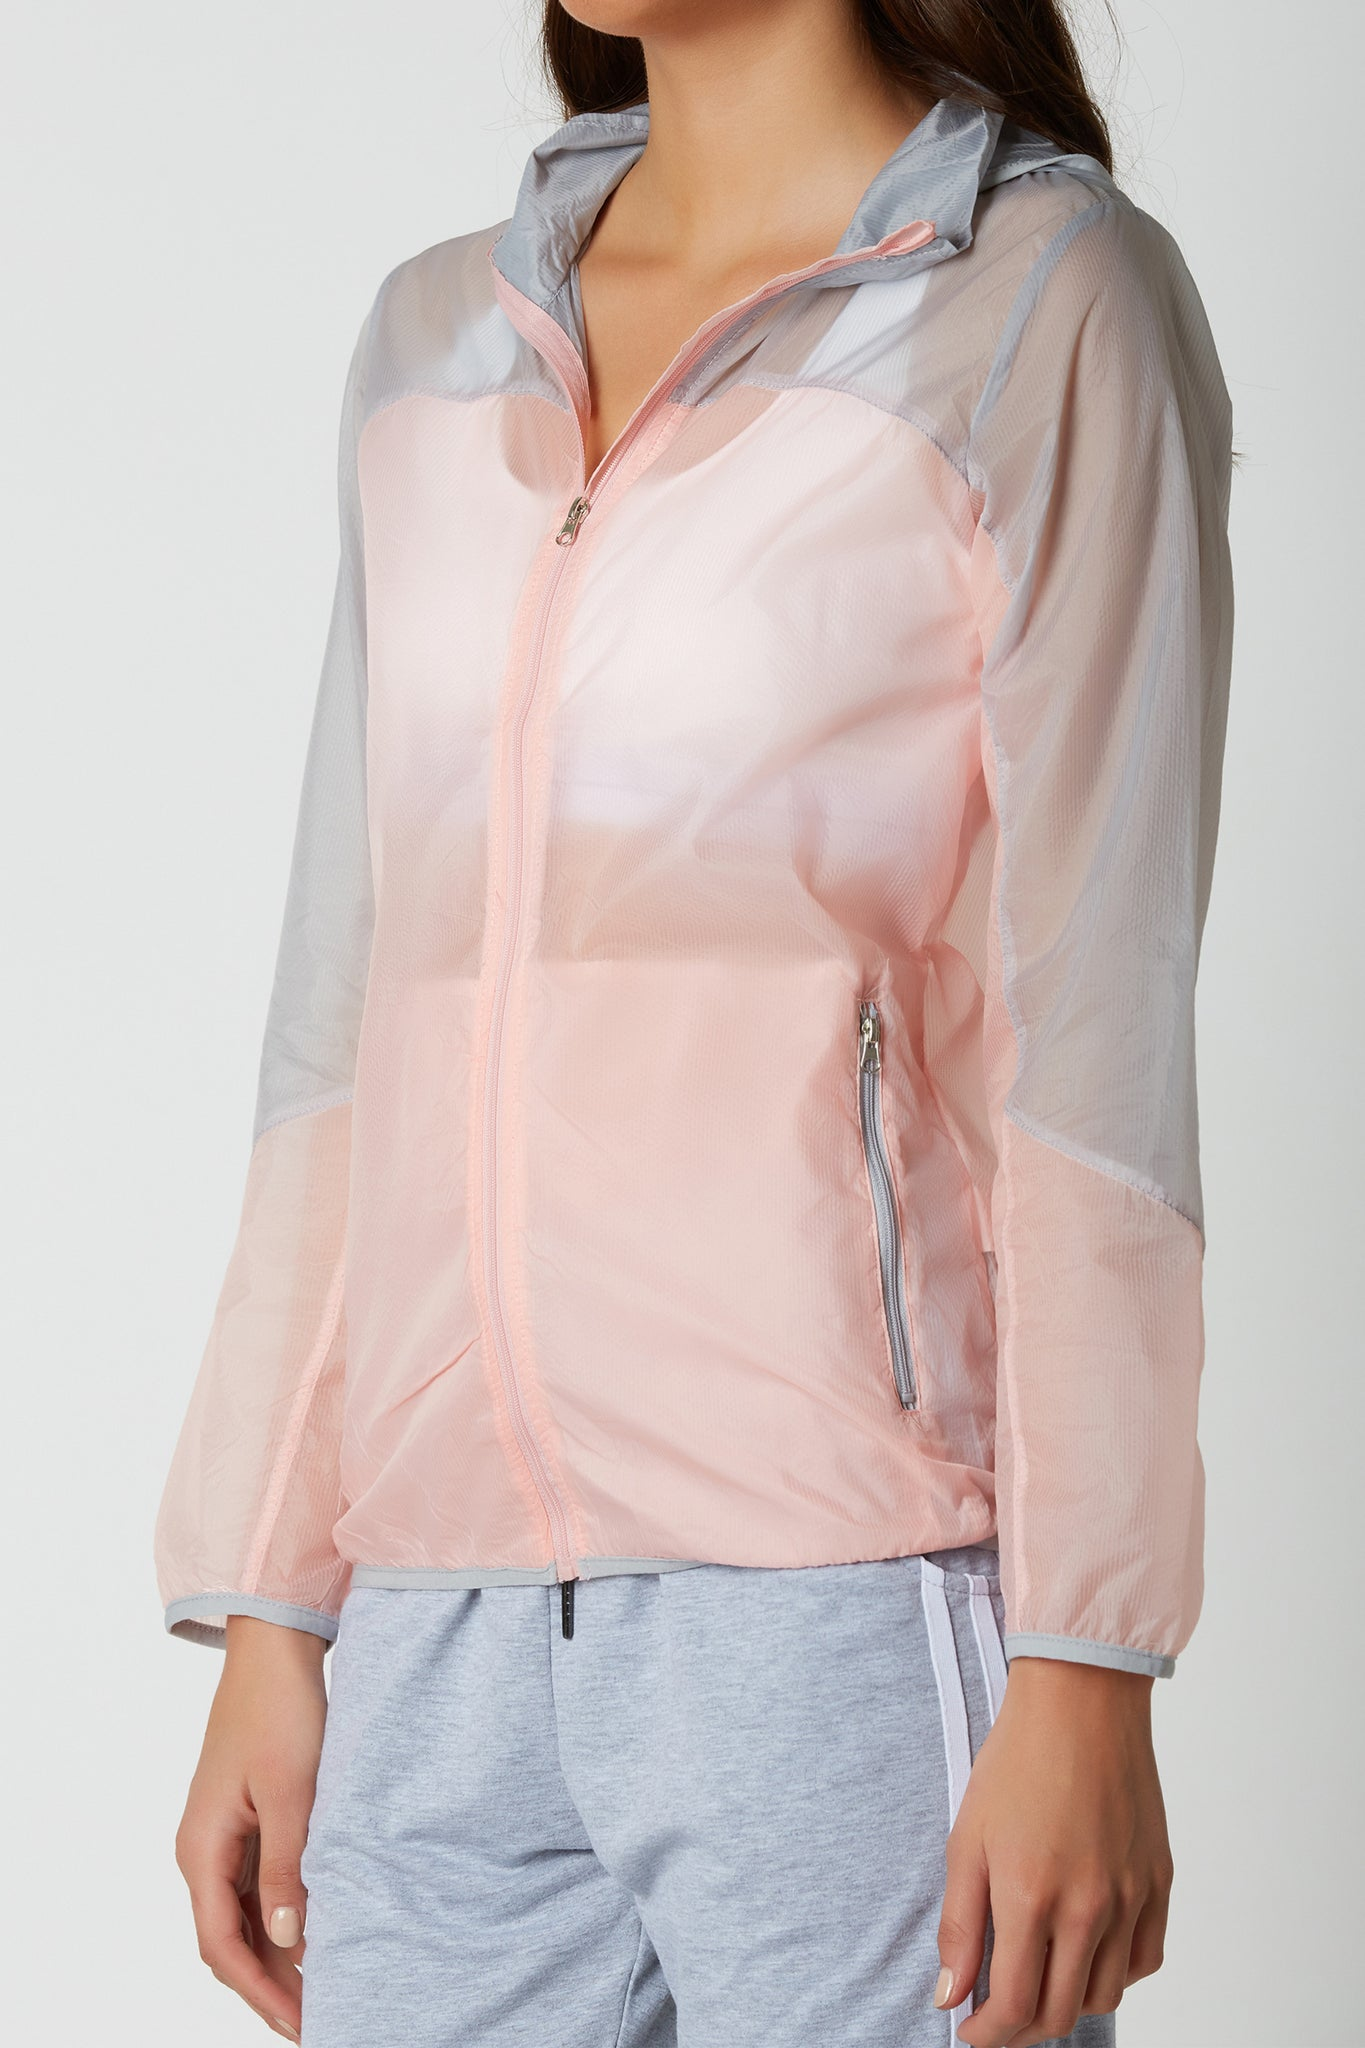 Trendy lightweight colorblock jacket, perfect for working out and rainy weather. Zip front closure with side pockets and straight hem finish.